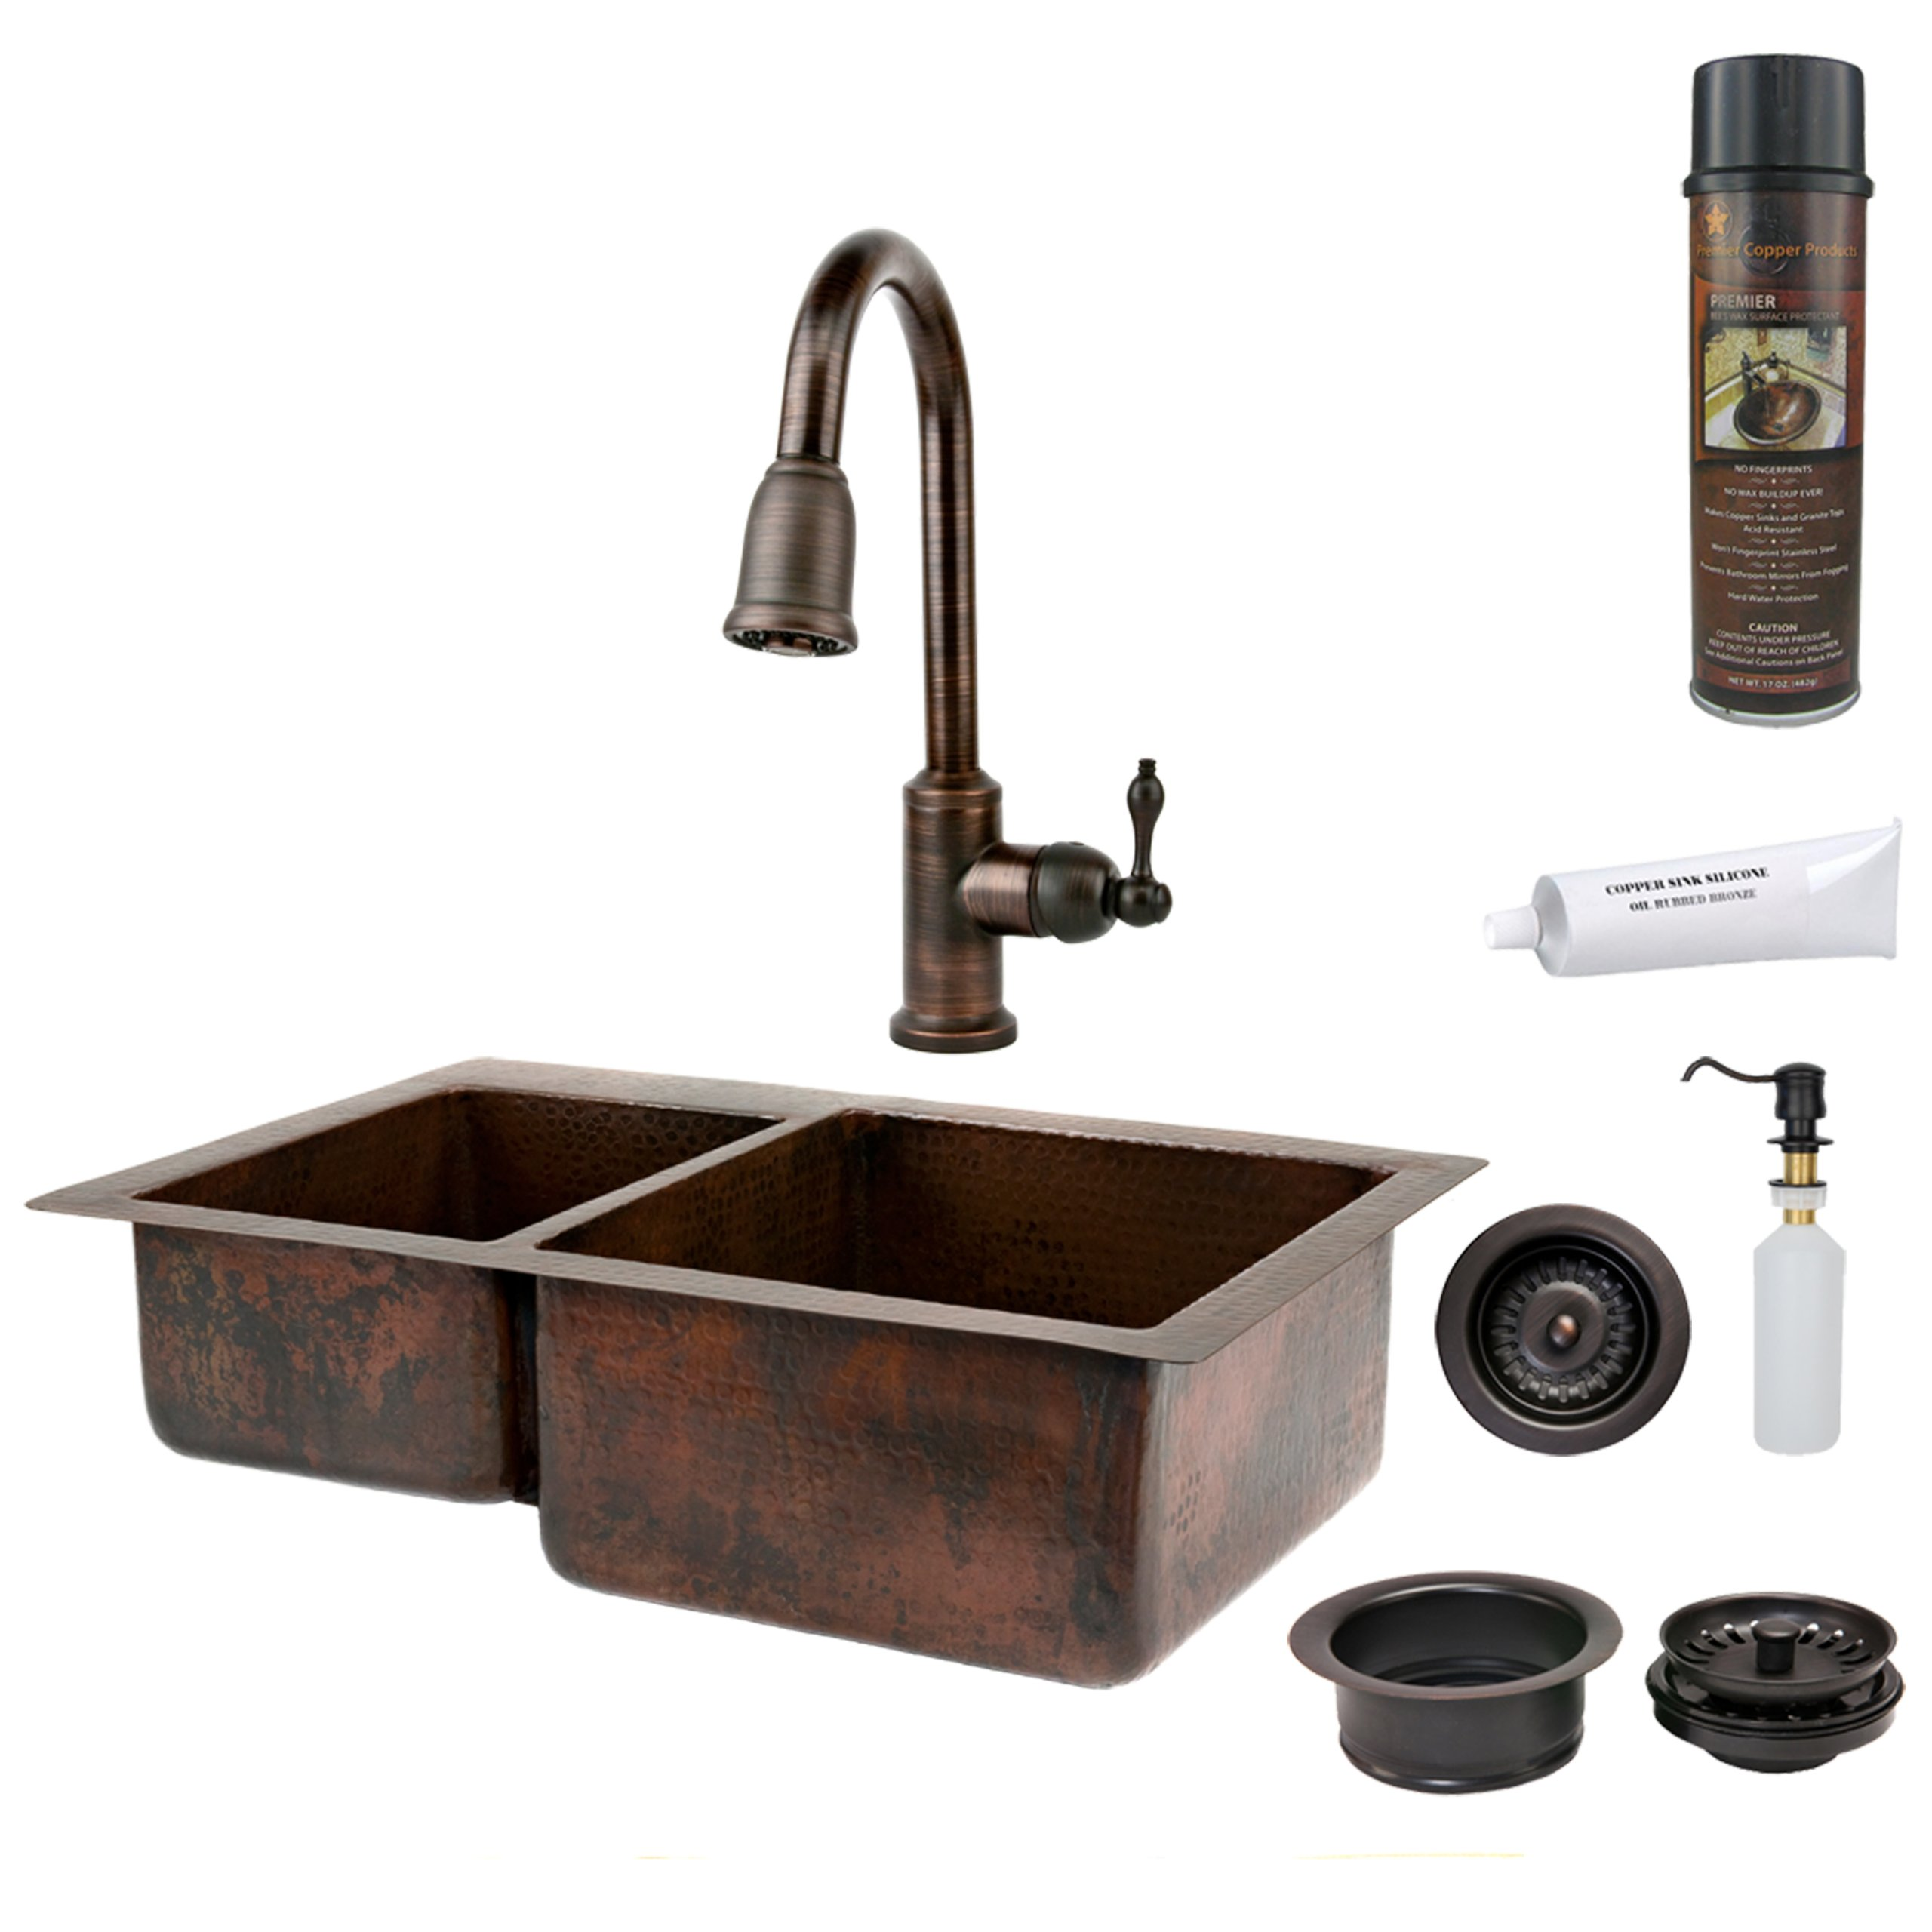 Premier Copper Products KSP2_K40DB33229 33-Inch Hammered Copper Kitchen 40/60 Double Basin Sink with Pull Down Faucet, Oil Rubbed Bronze by Premier Copper Products